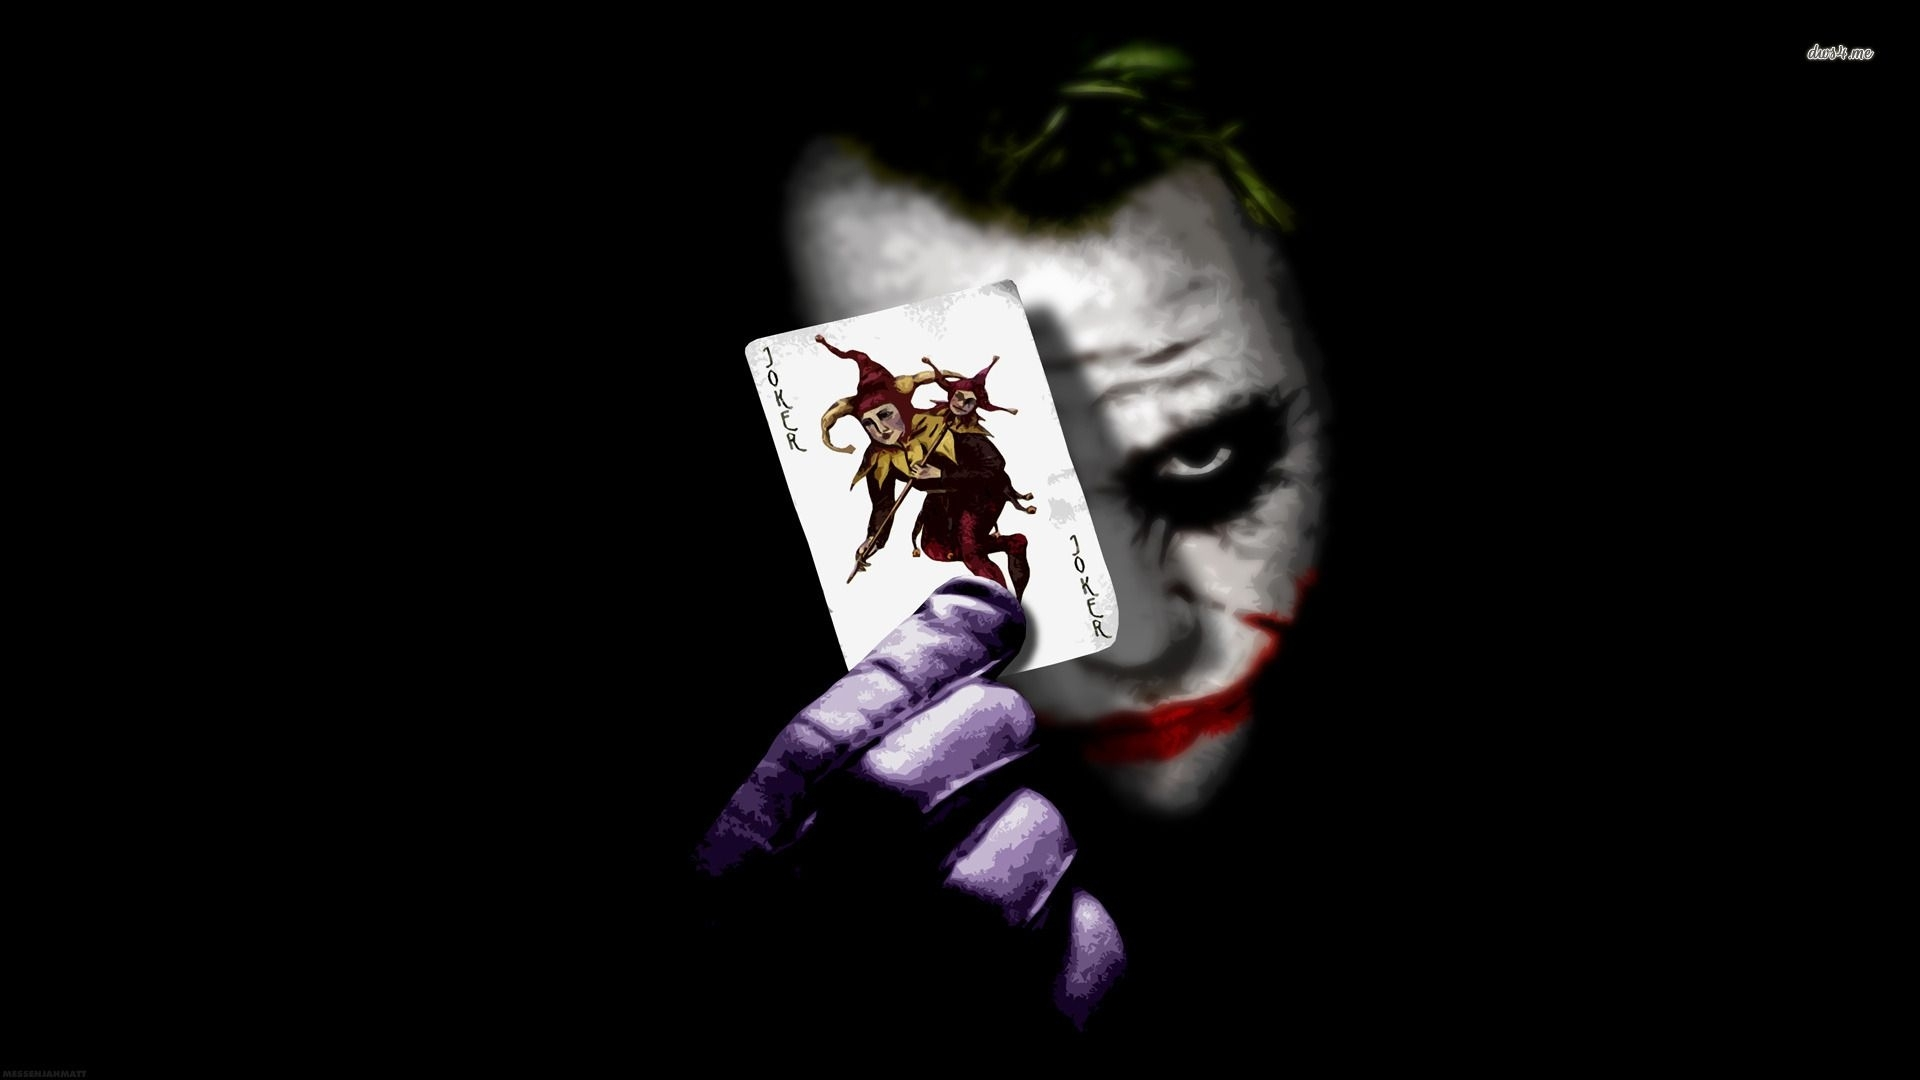 joker hd wallpapers 8 | joker hd wallpapers | pinterest